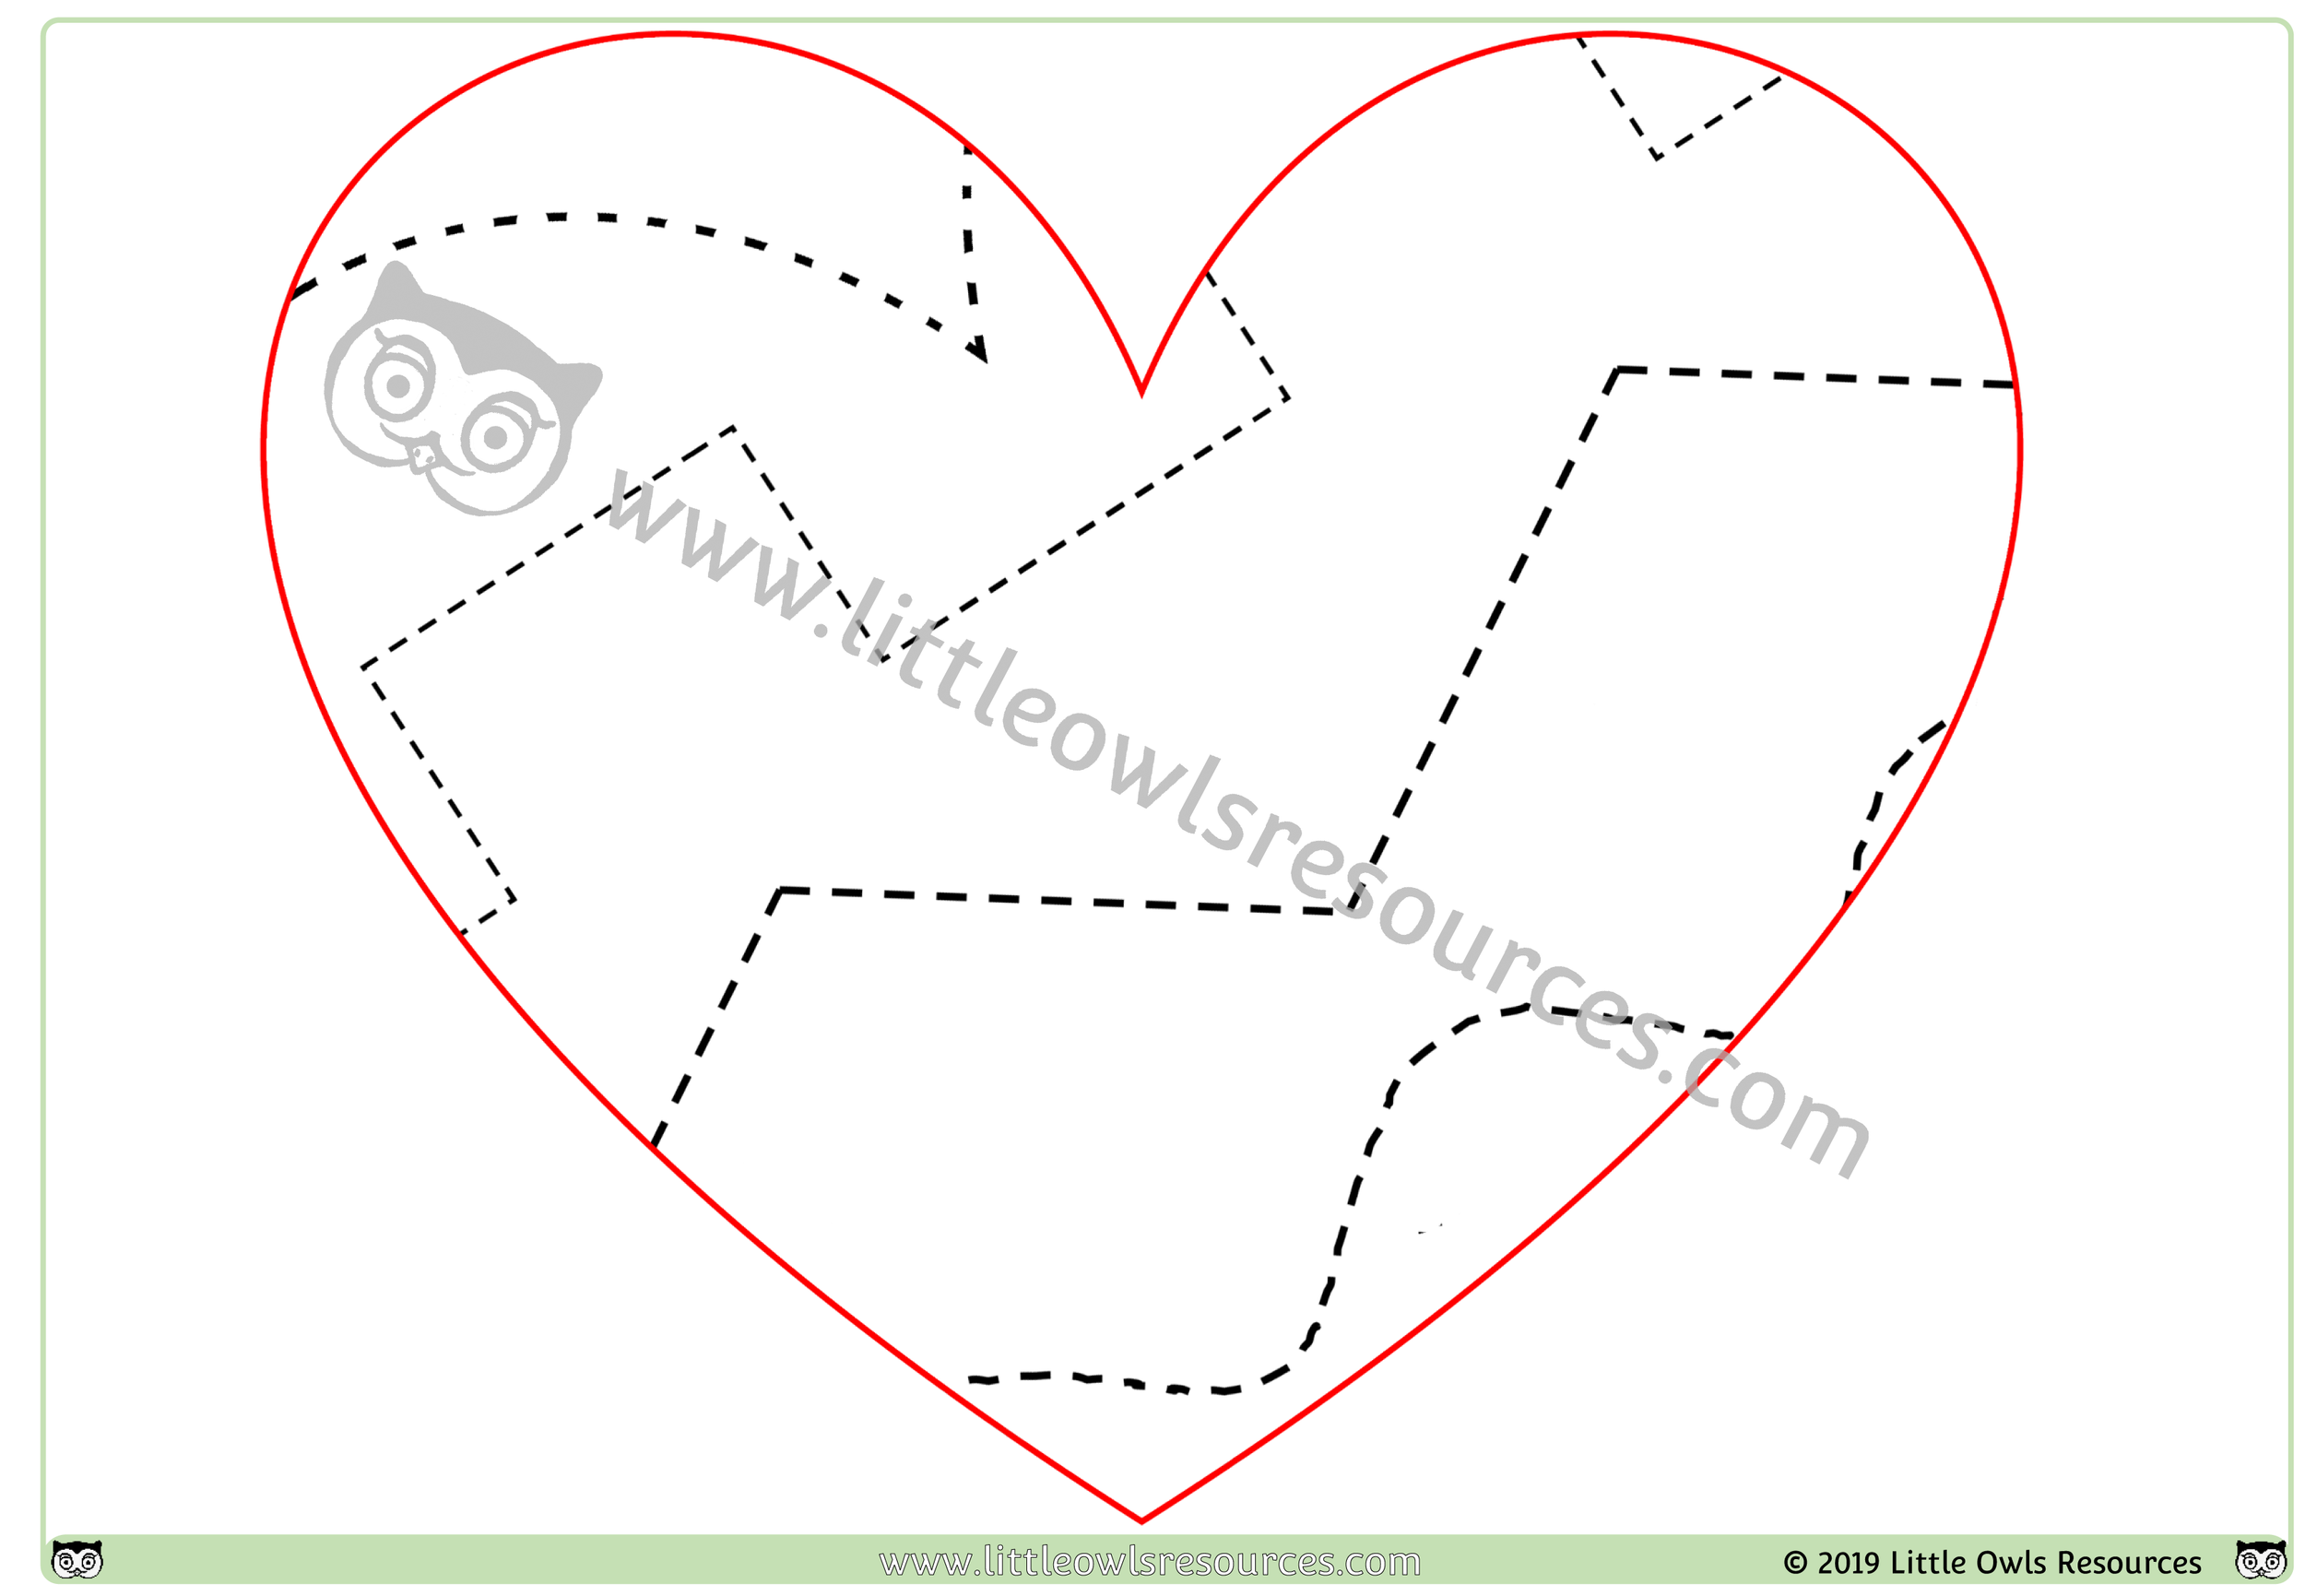 Fine Motor Control Heart 1 - So versatile!1. Cut along lines 2. Draw along lines 3. Place loose parts on lines/in sections to create a work of art 4. Stick collage materials on lines/in sections to create a work of art…